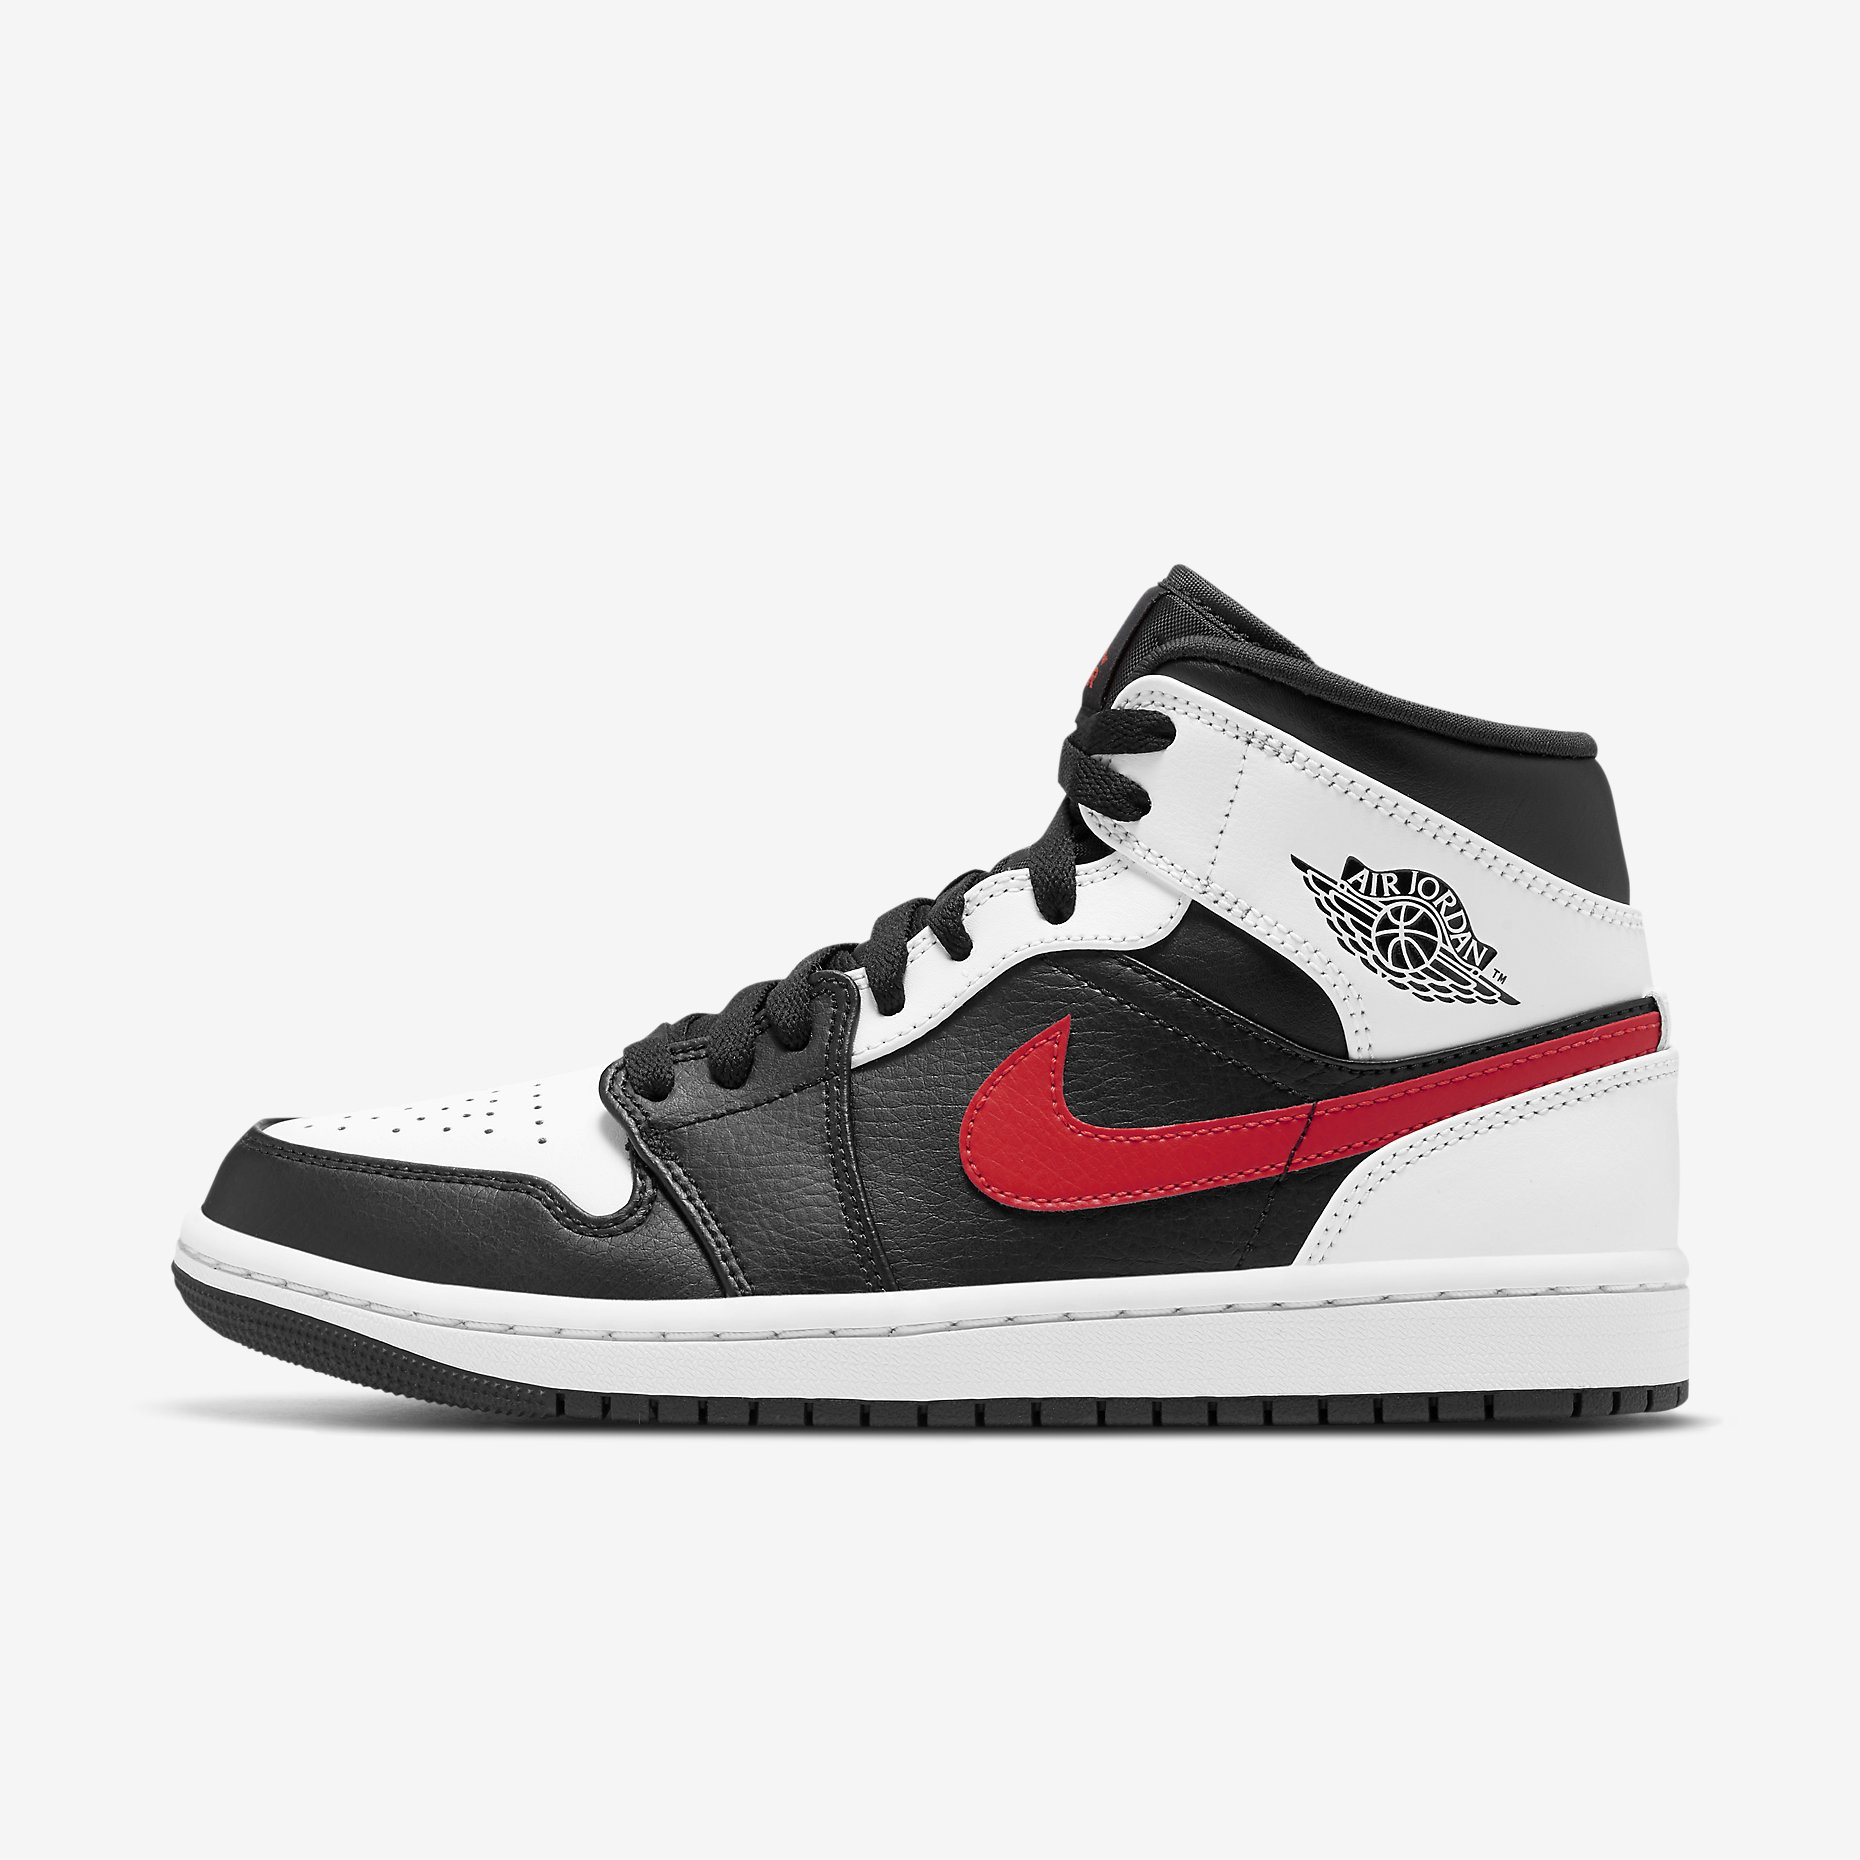 Air Jordan 1 Mid 'White/Black/Chile Red'}